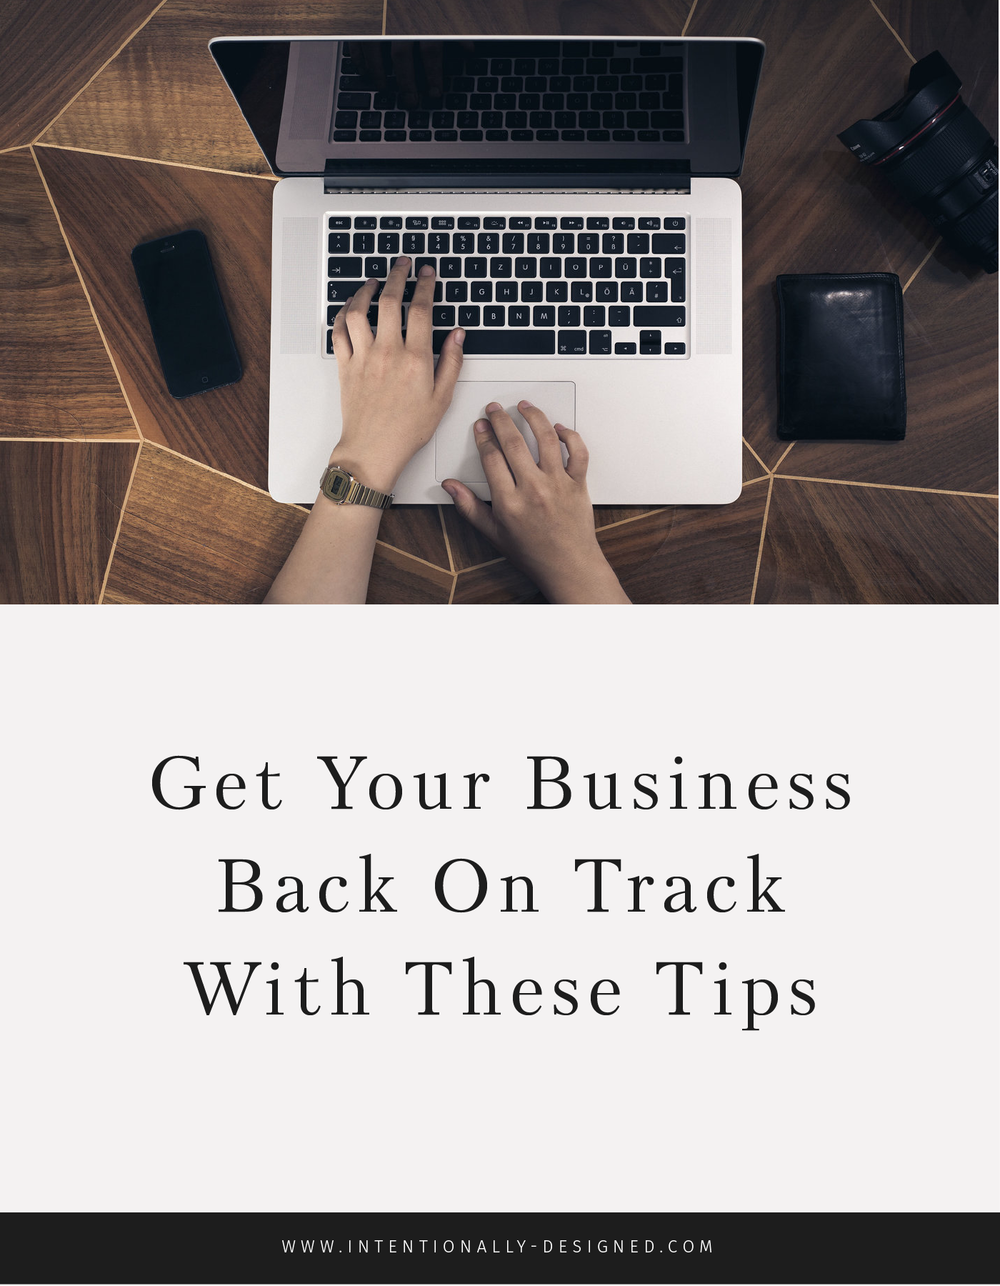 Get Your Business Back On Track With These Tips